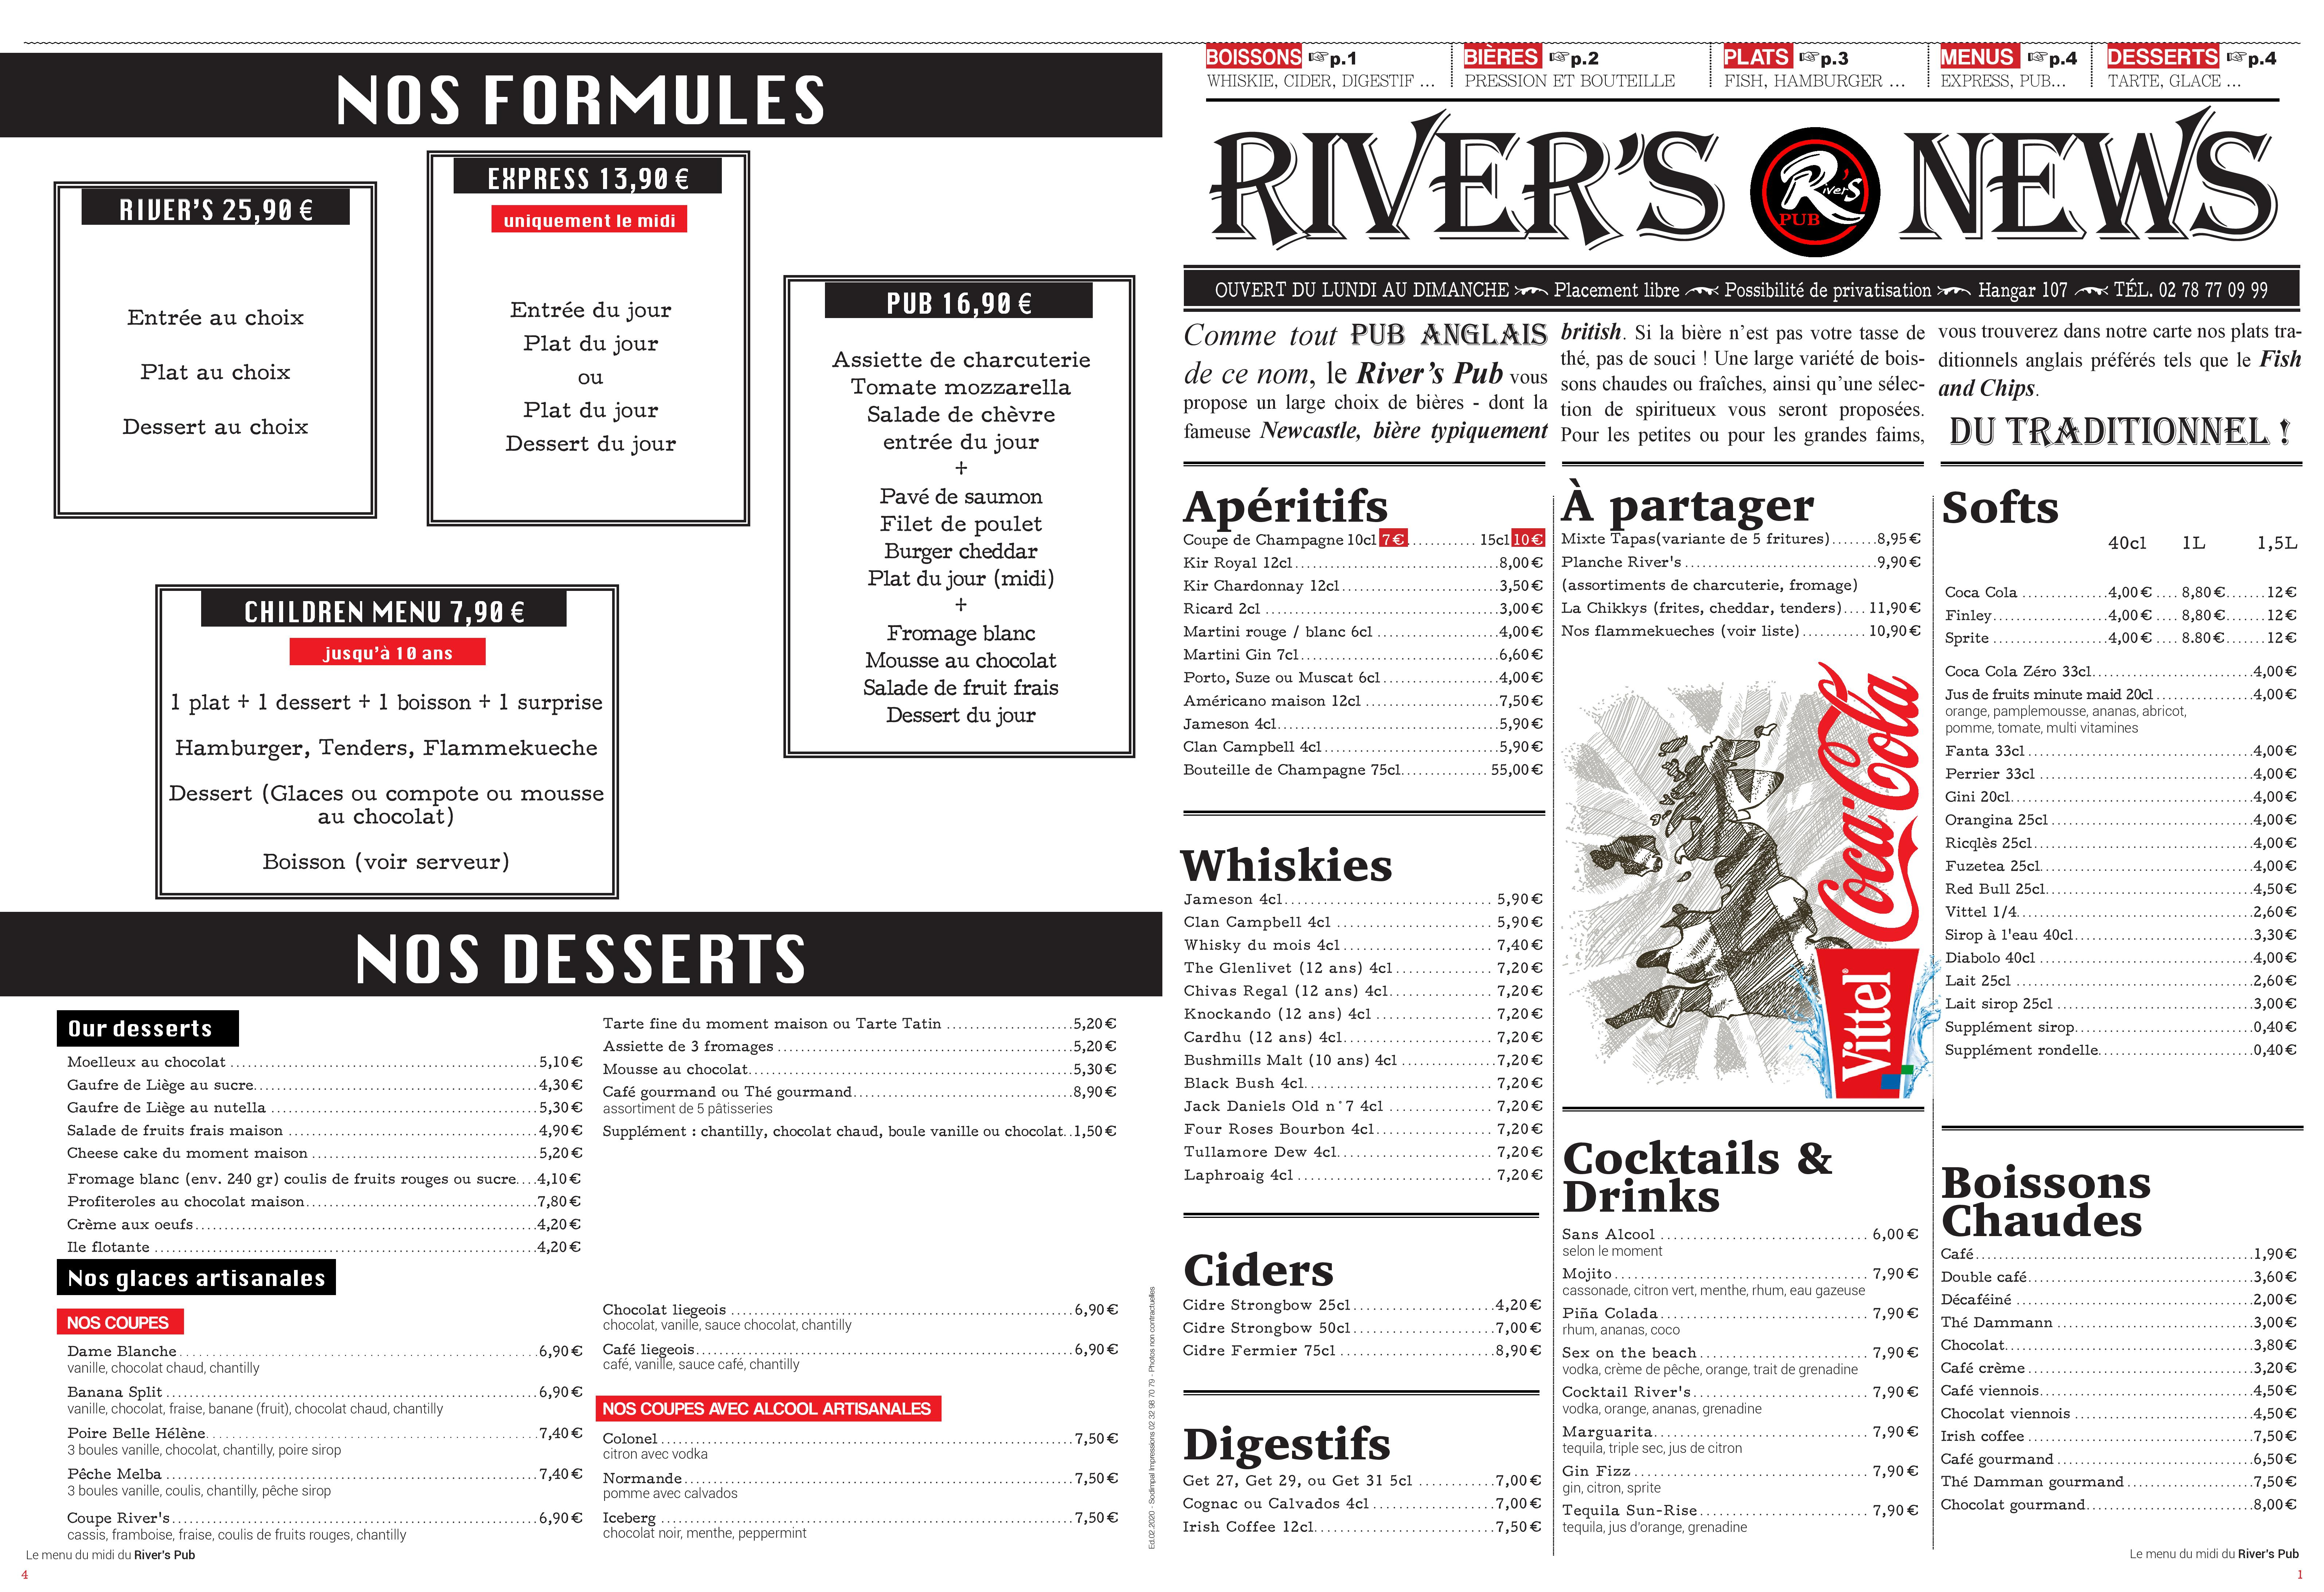 rivers-page-001